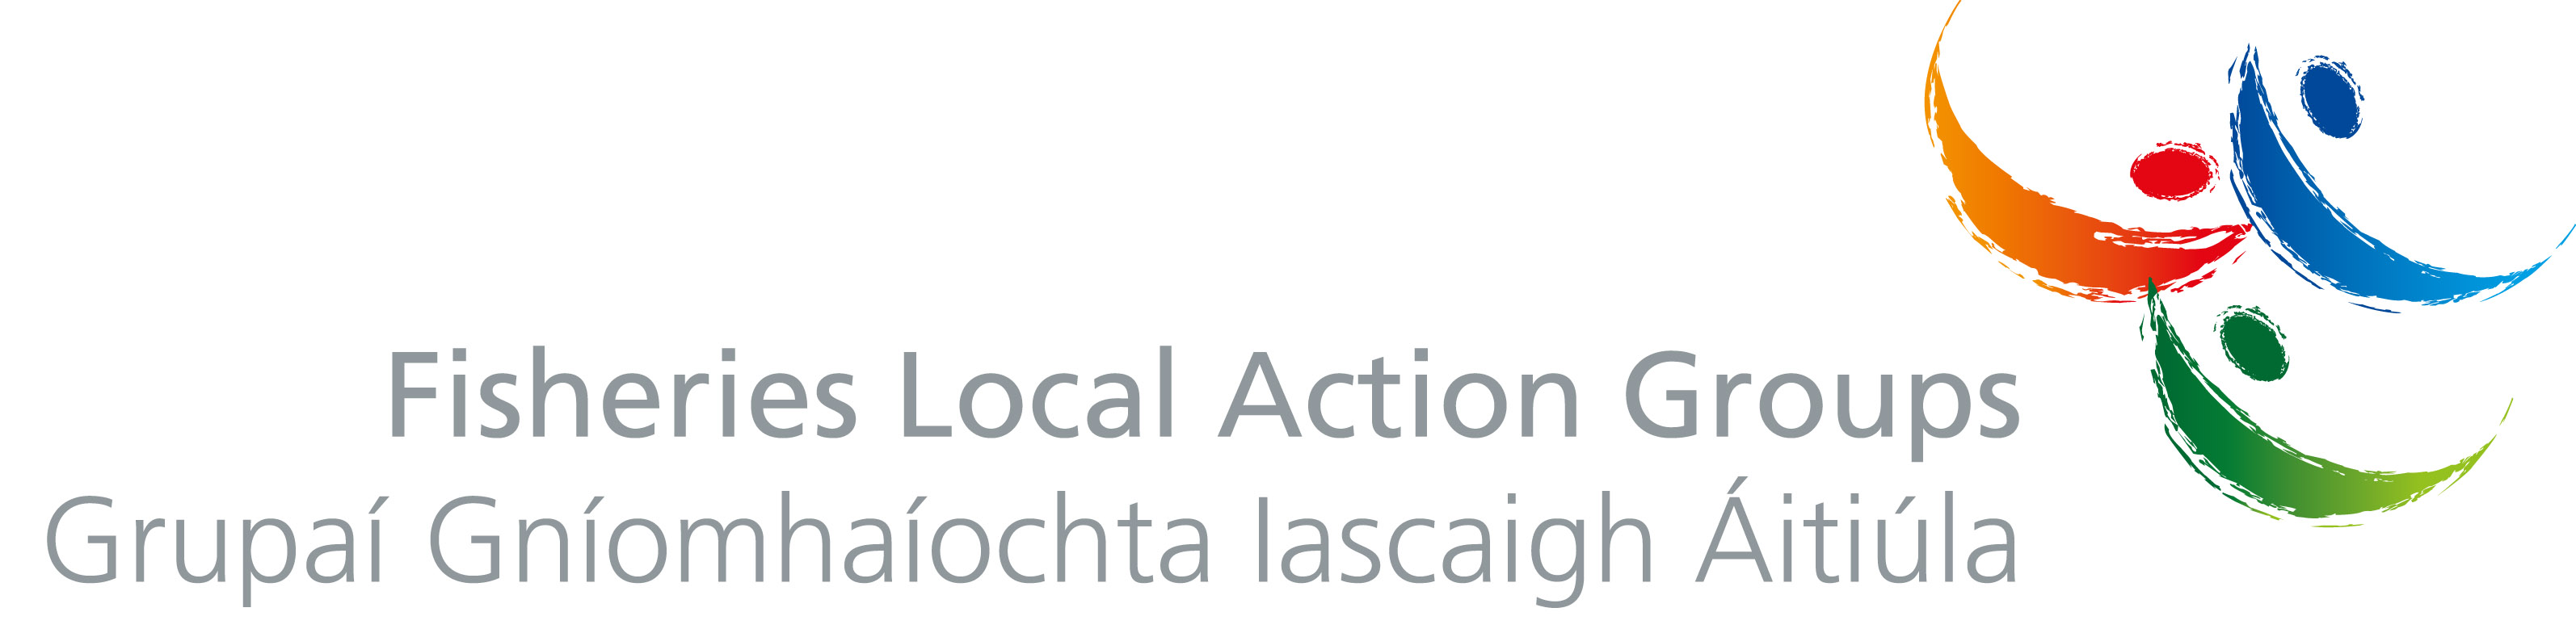 Fisheries-local-Action-Group-logo